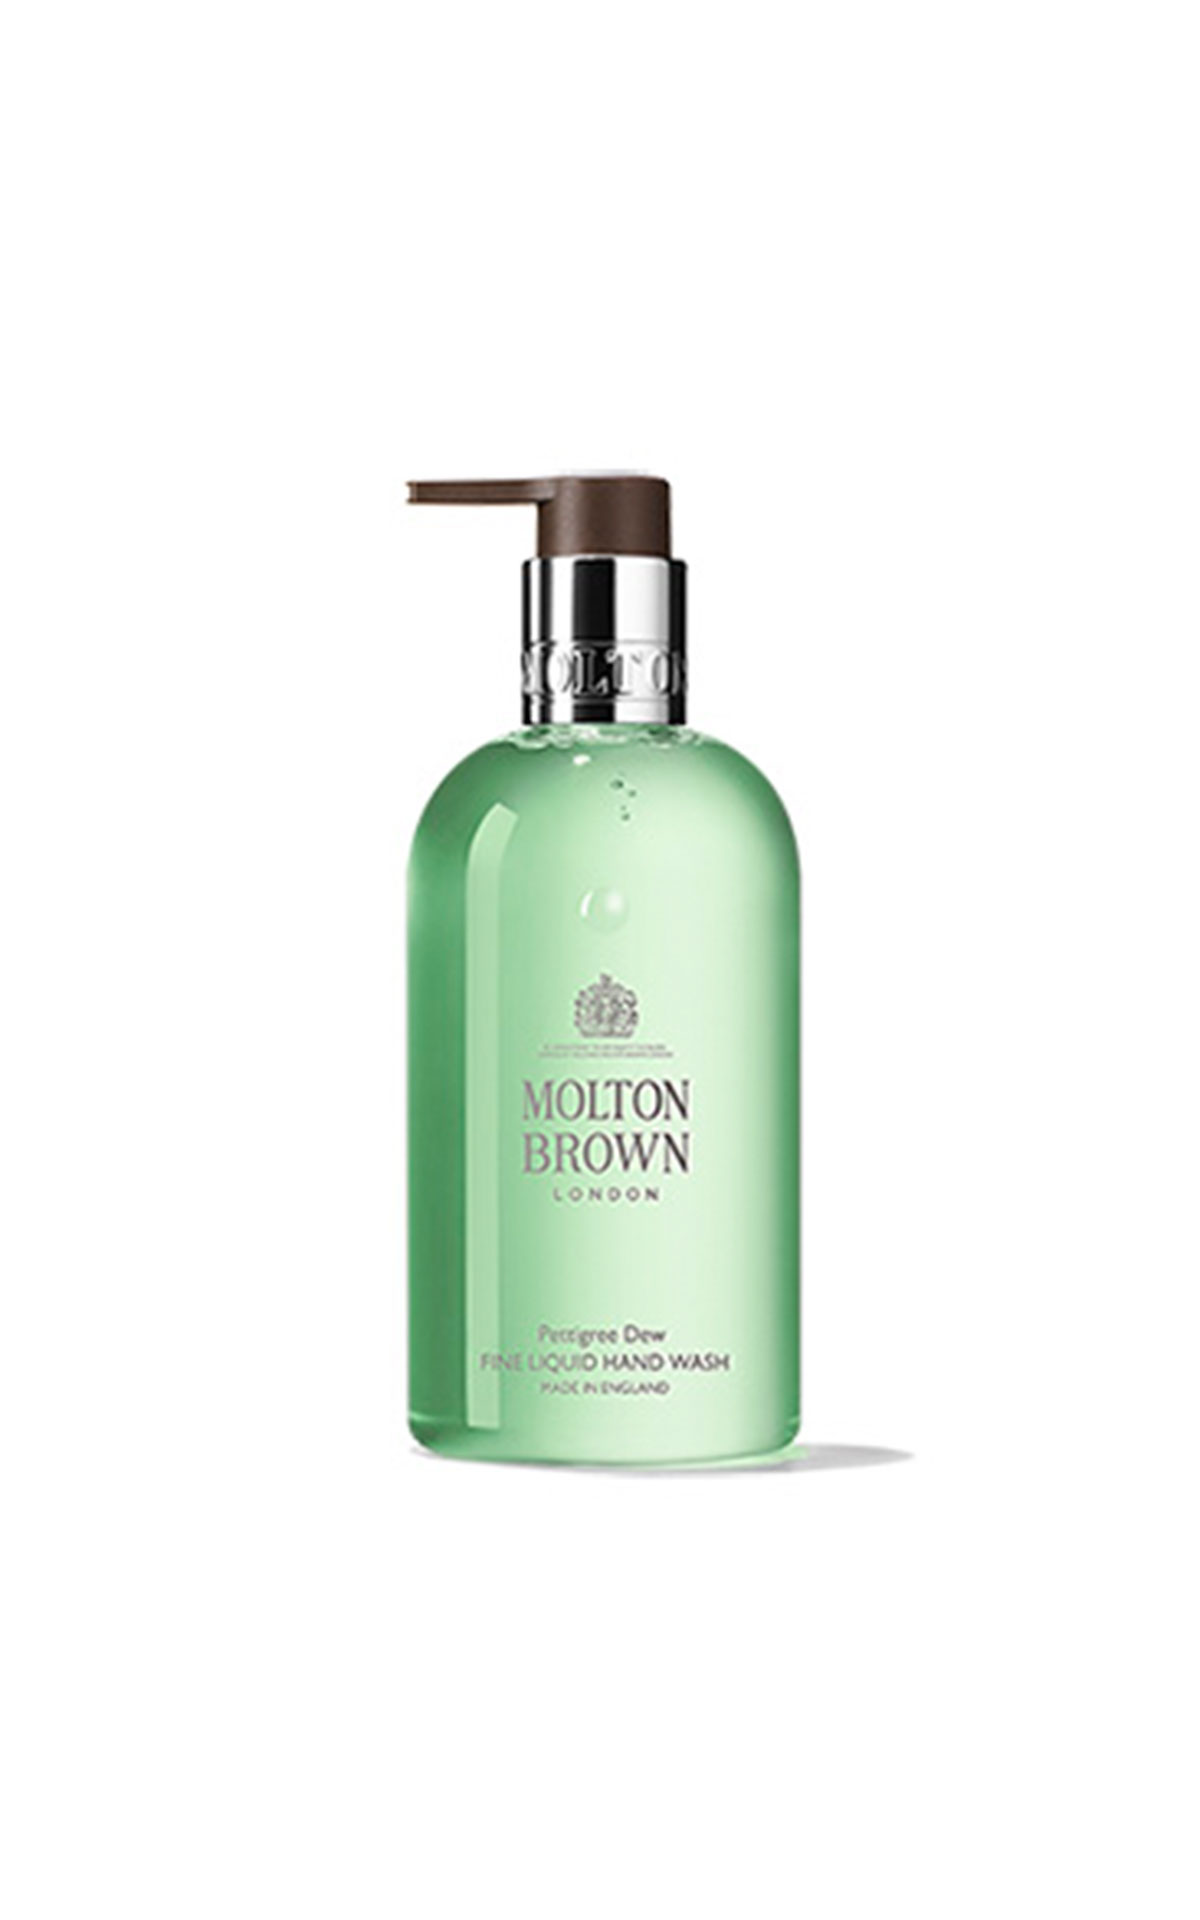 Molton Brown Pettigree Dew handwash 300ml from Bicester Village